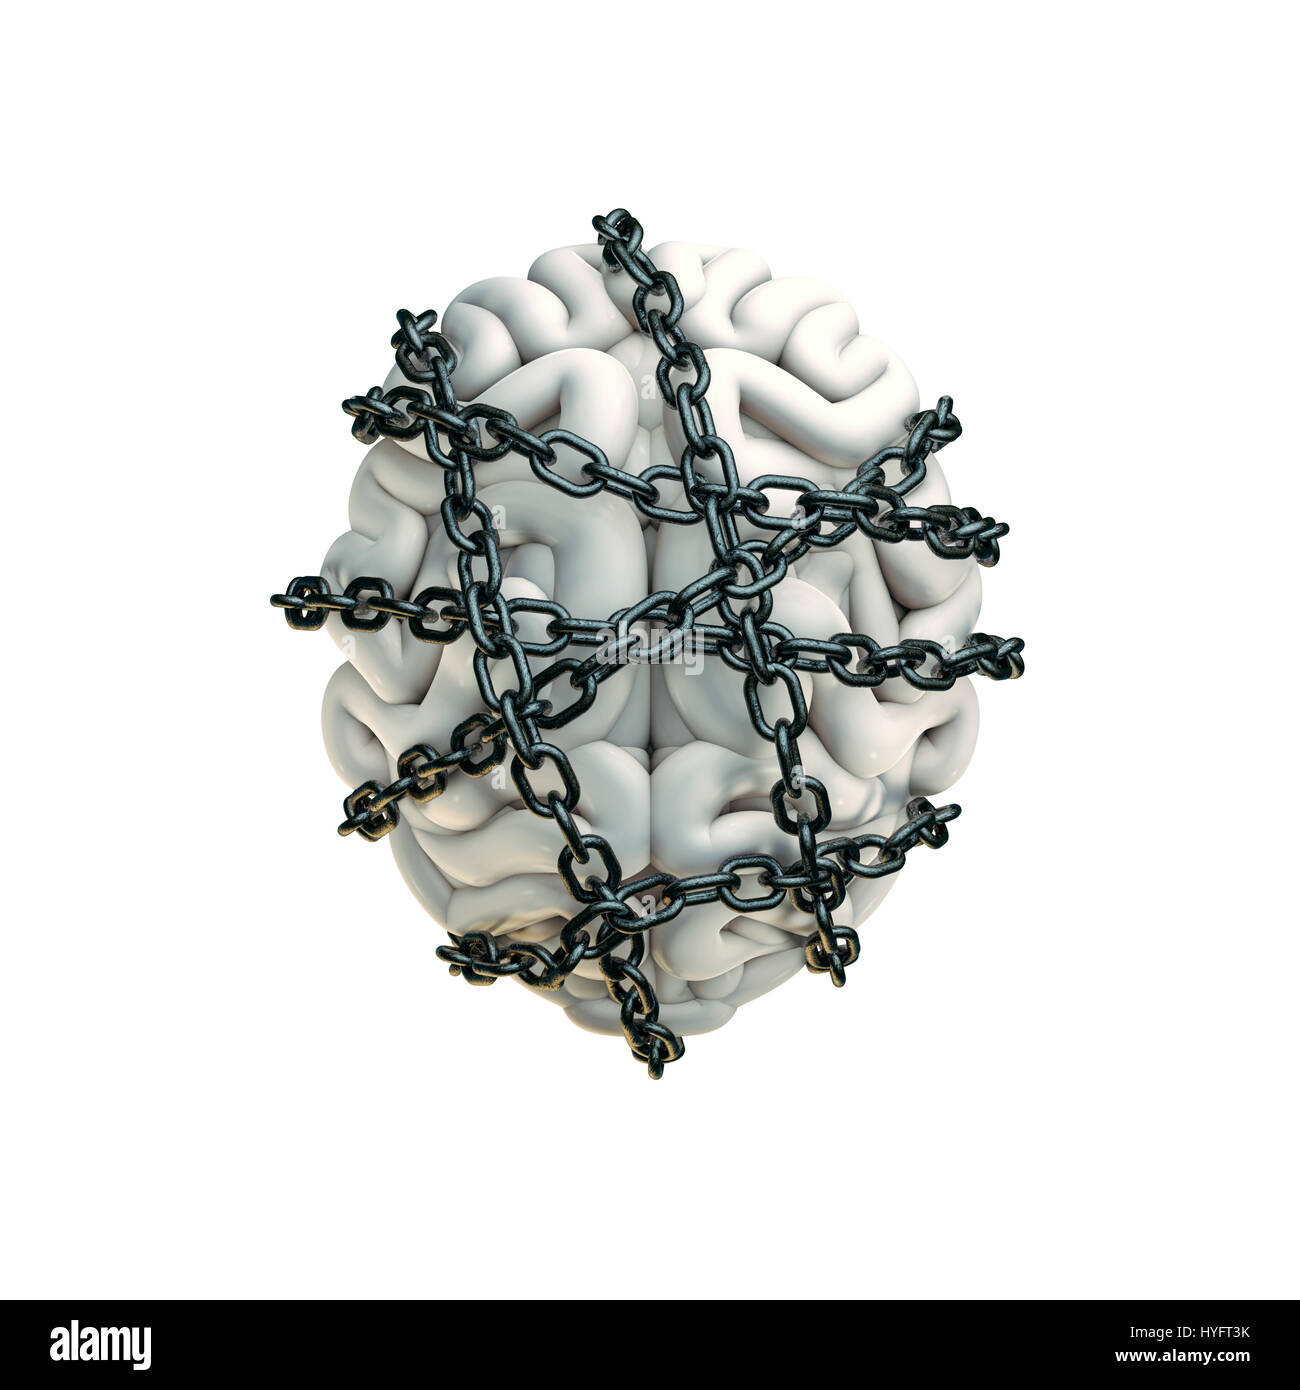 Forbidden thoughts concept / 3D illustration of human brain bound with metal chain - Stock Image